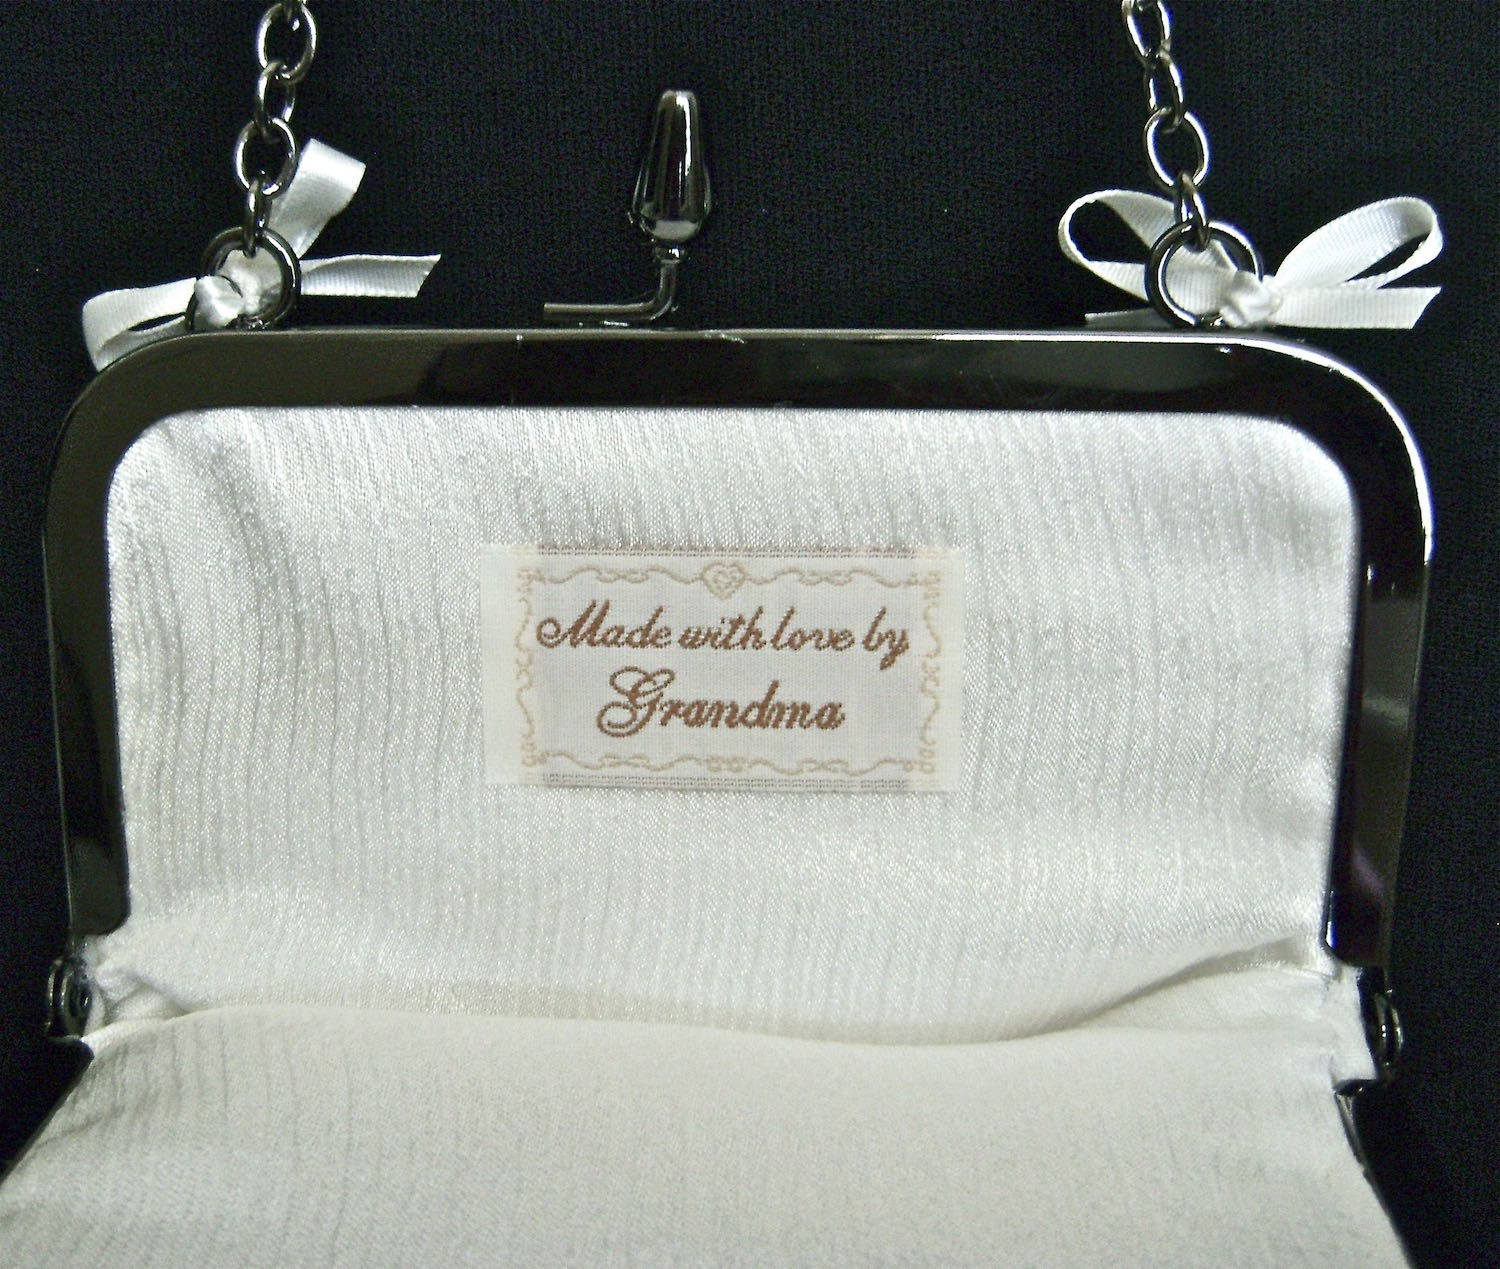 "Optional label inside - Attach it by sewing or fabric glue.  Finished purse measures 7"" x 7""."